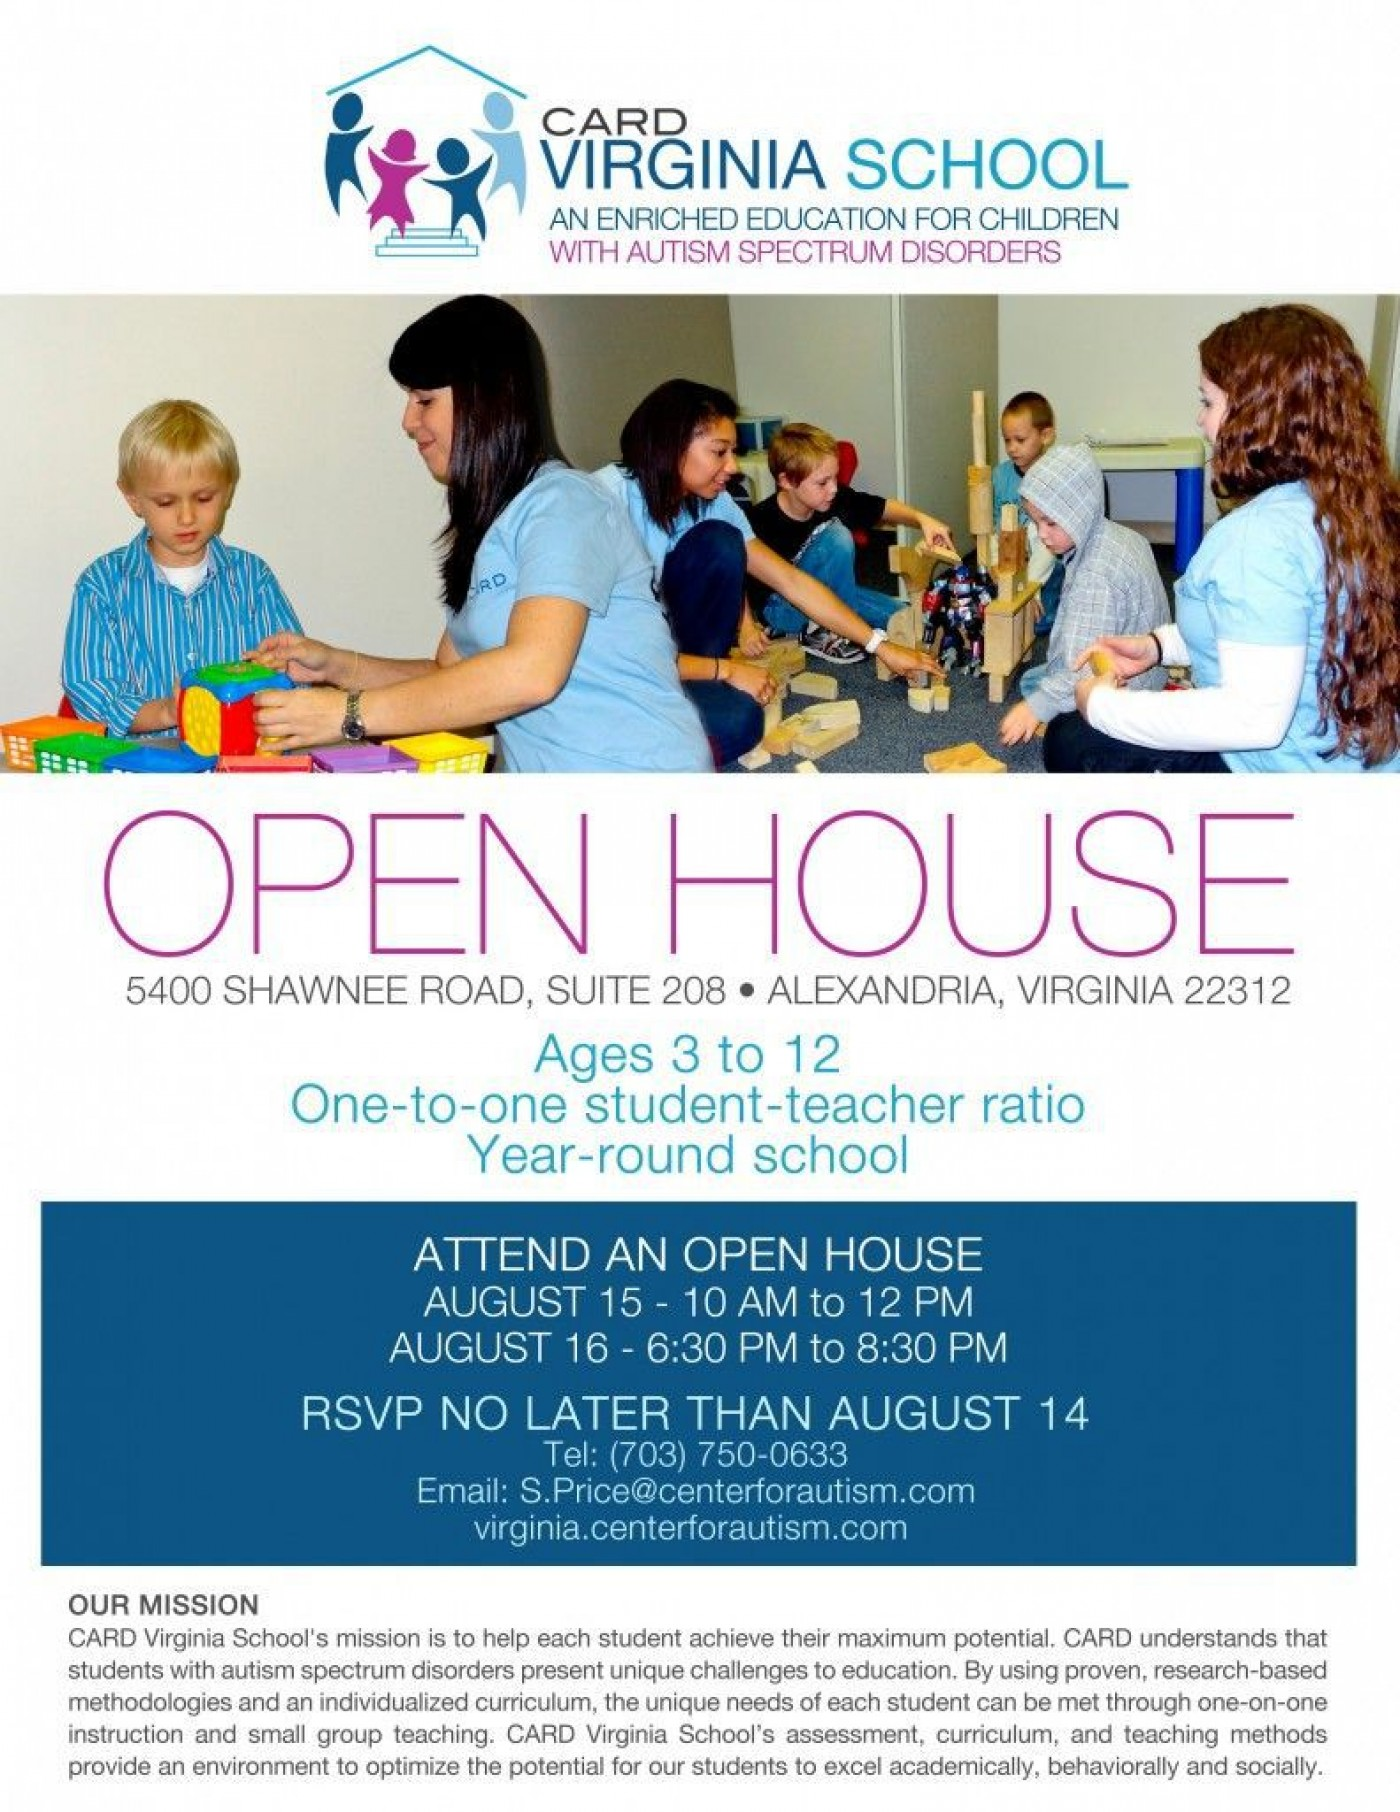 003 Surprising School Open House Flyer Template Image  Elementary Free Word1400